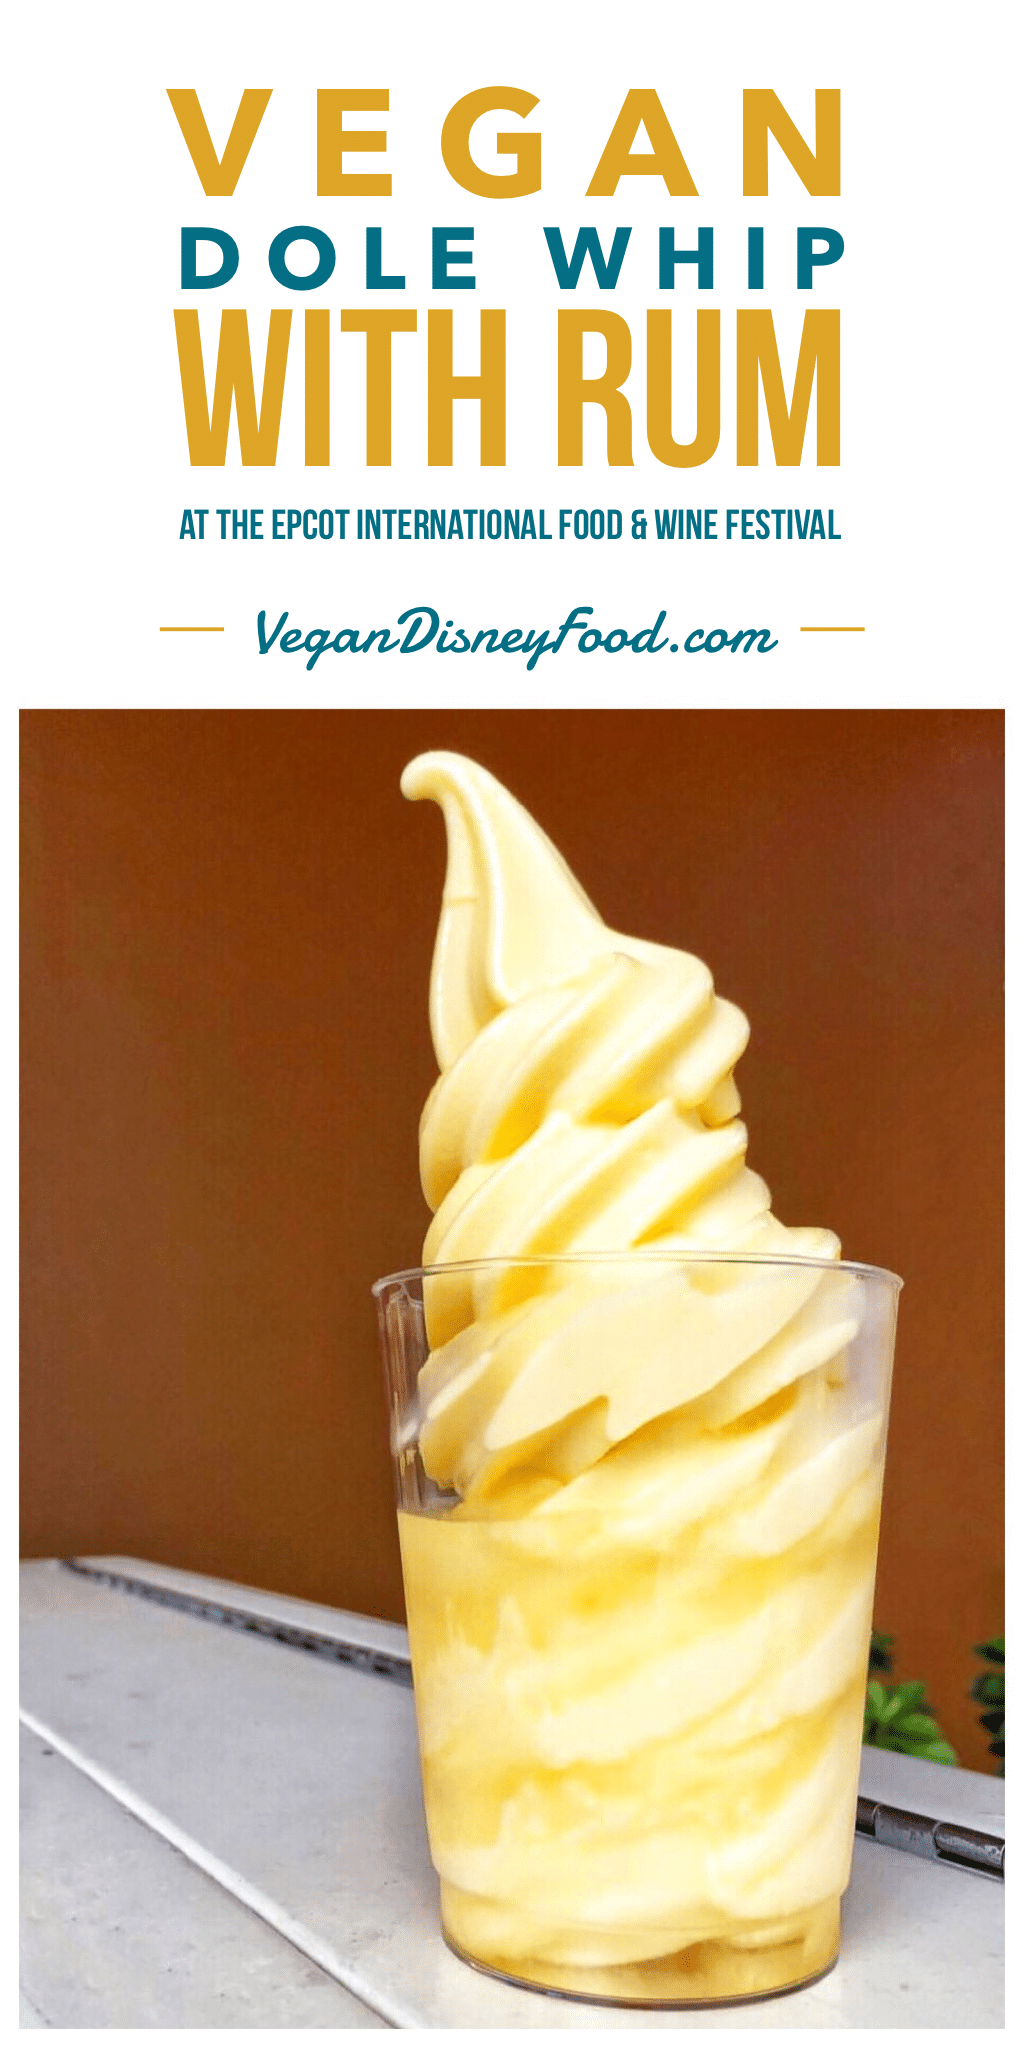 Vegan Dole Whip with Rum at the 2019 Epcot International Food and Wine Festival at Walt Disney World